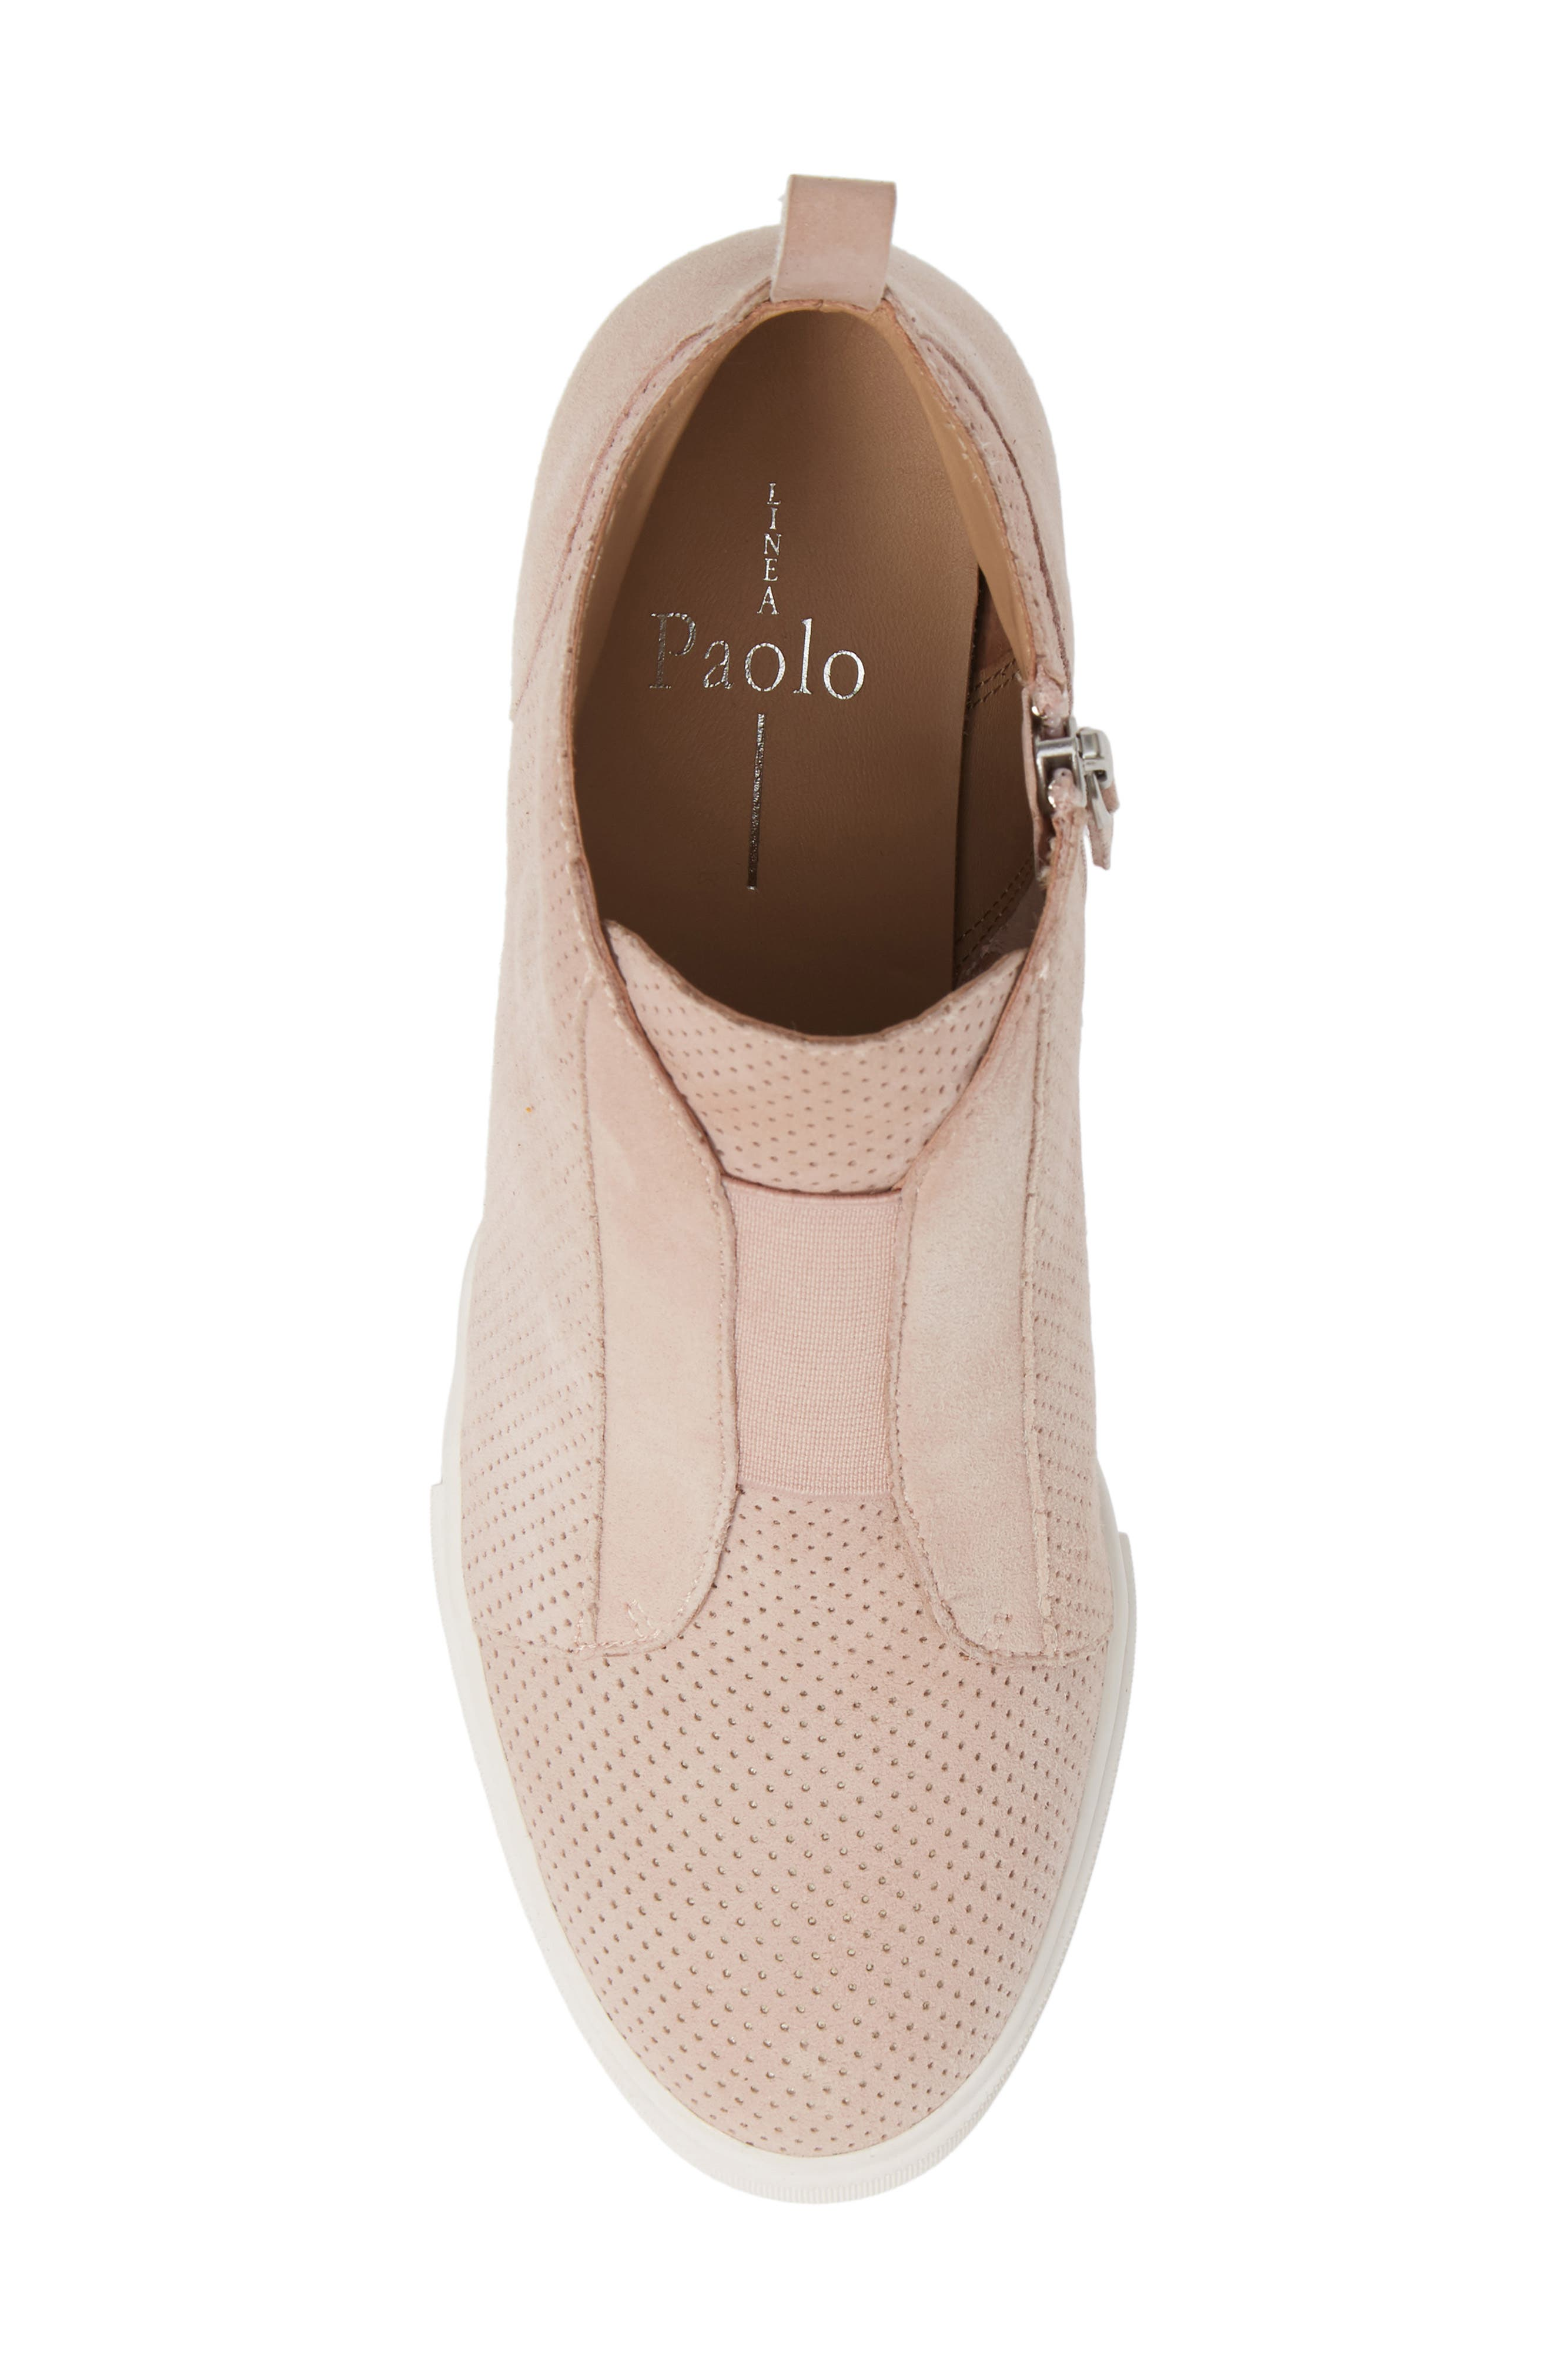 LINEA PAOLO, Felicia Wedge Bootie, Alternate thumbnail 5, color, BLUSH PERFORATED SUEDE